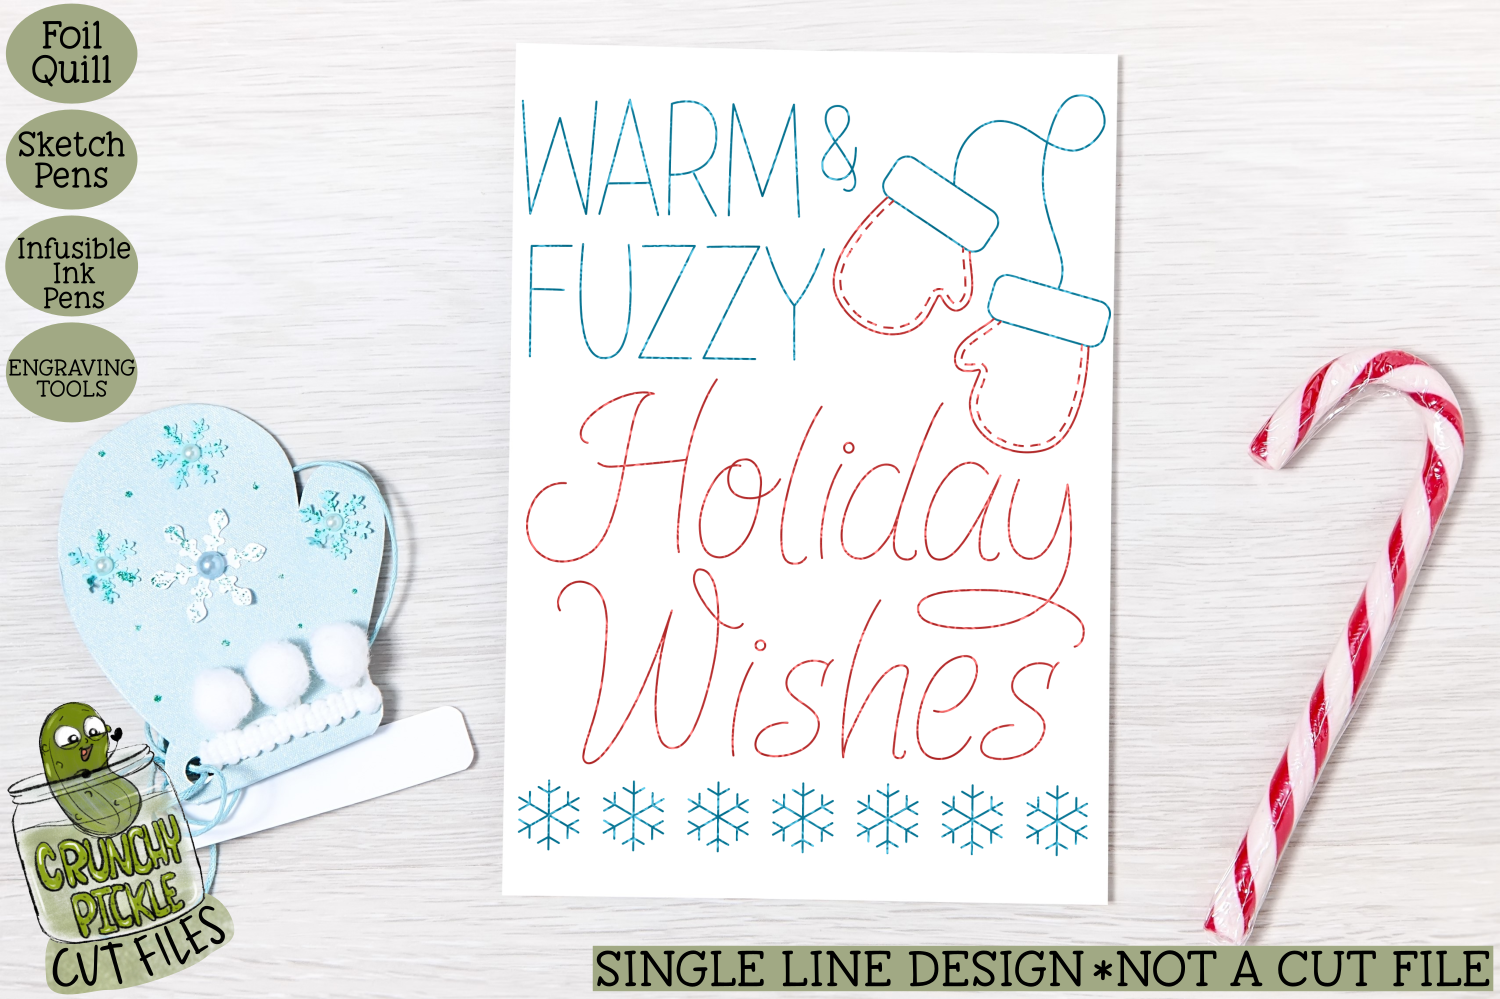 Foil Quill Christmas Card - Warm and Fuzzy / Single Line Ske example image 1